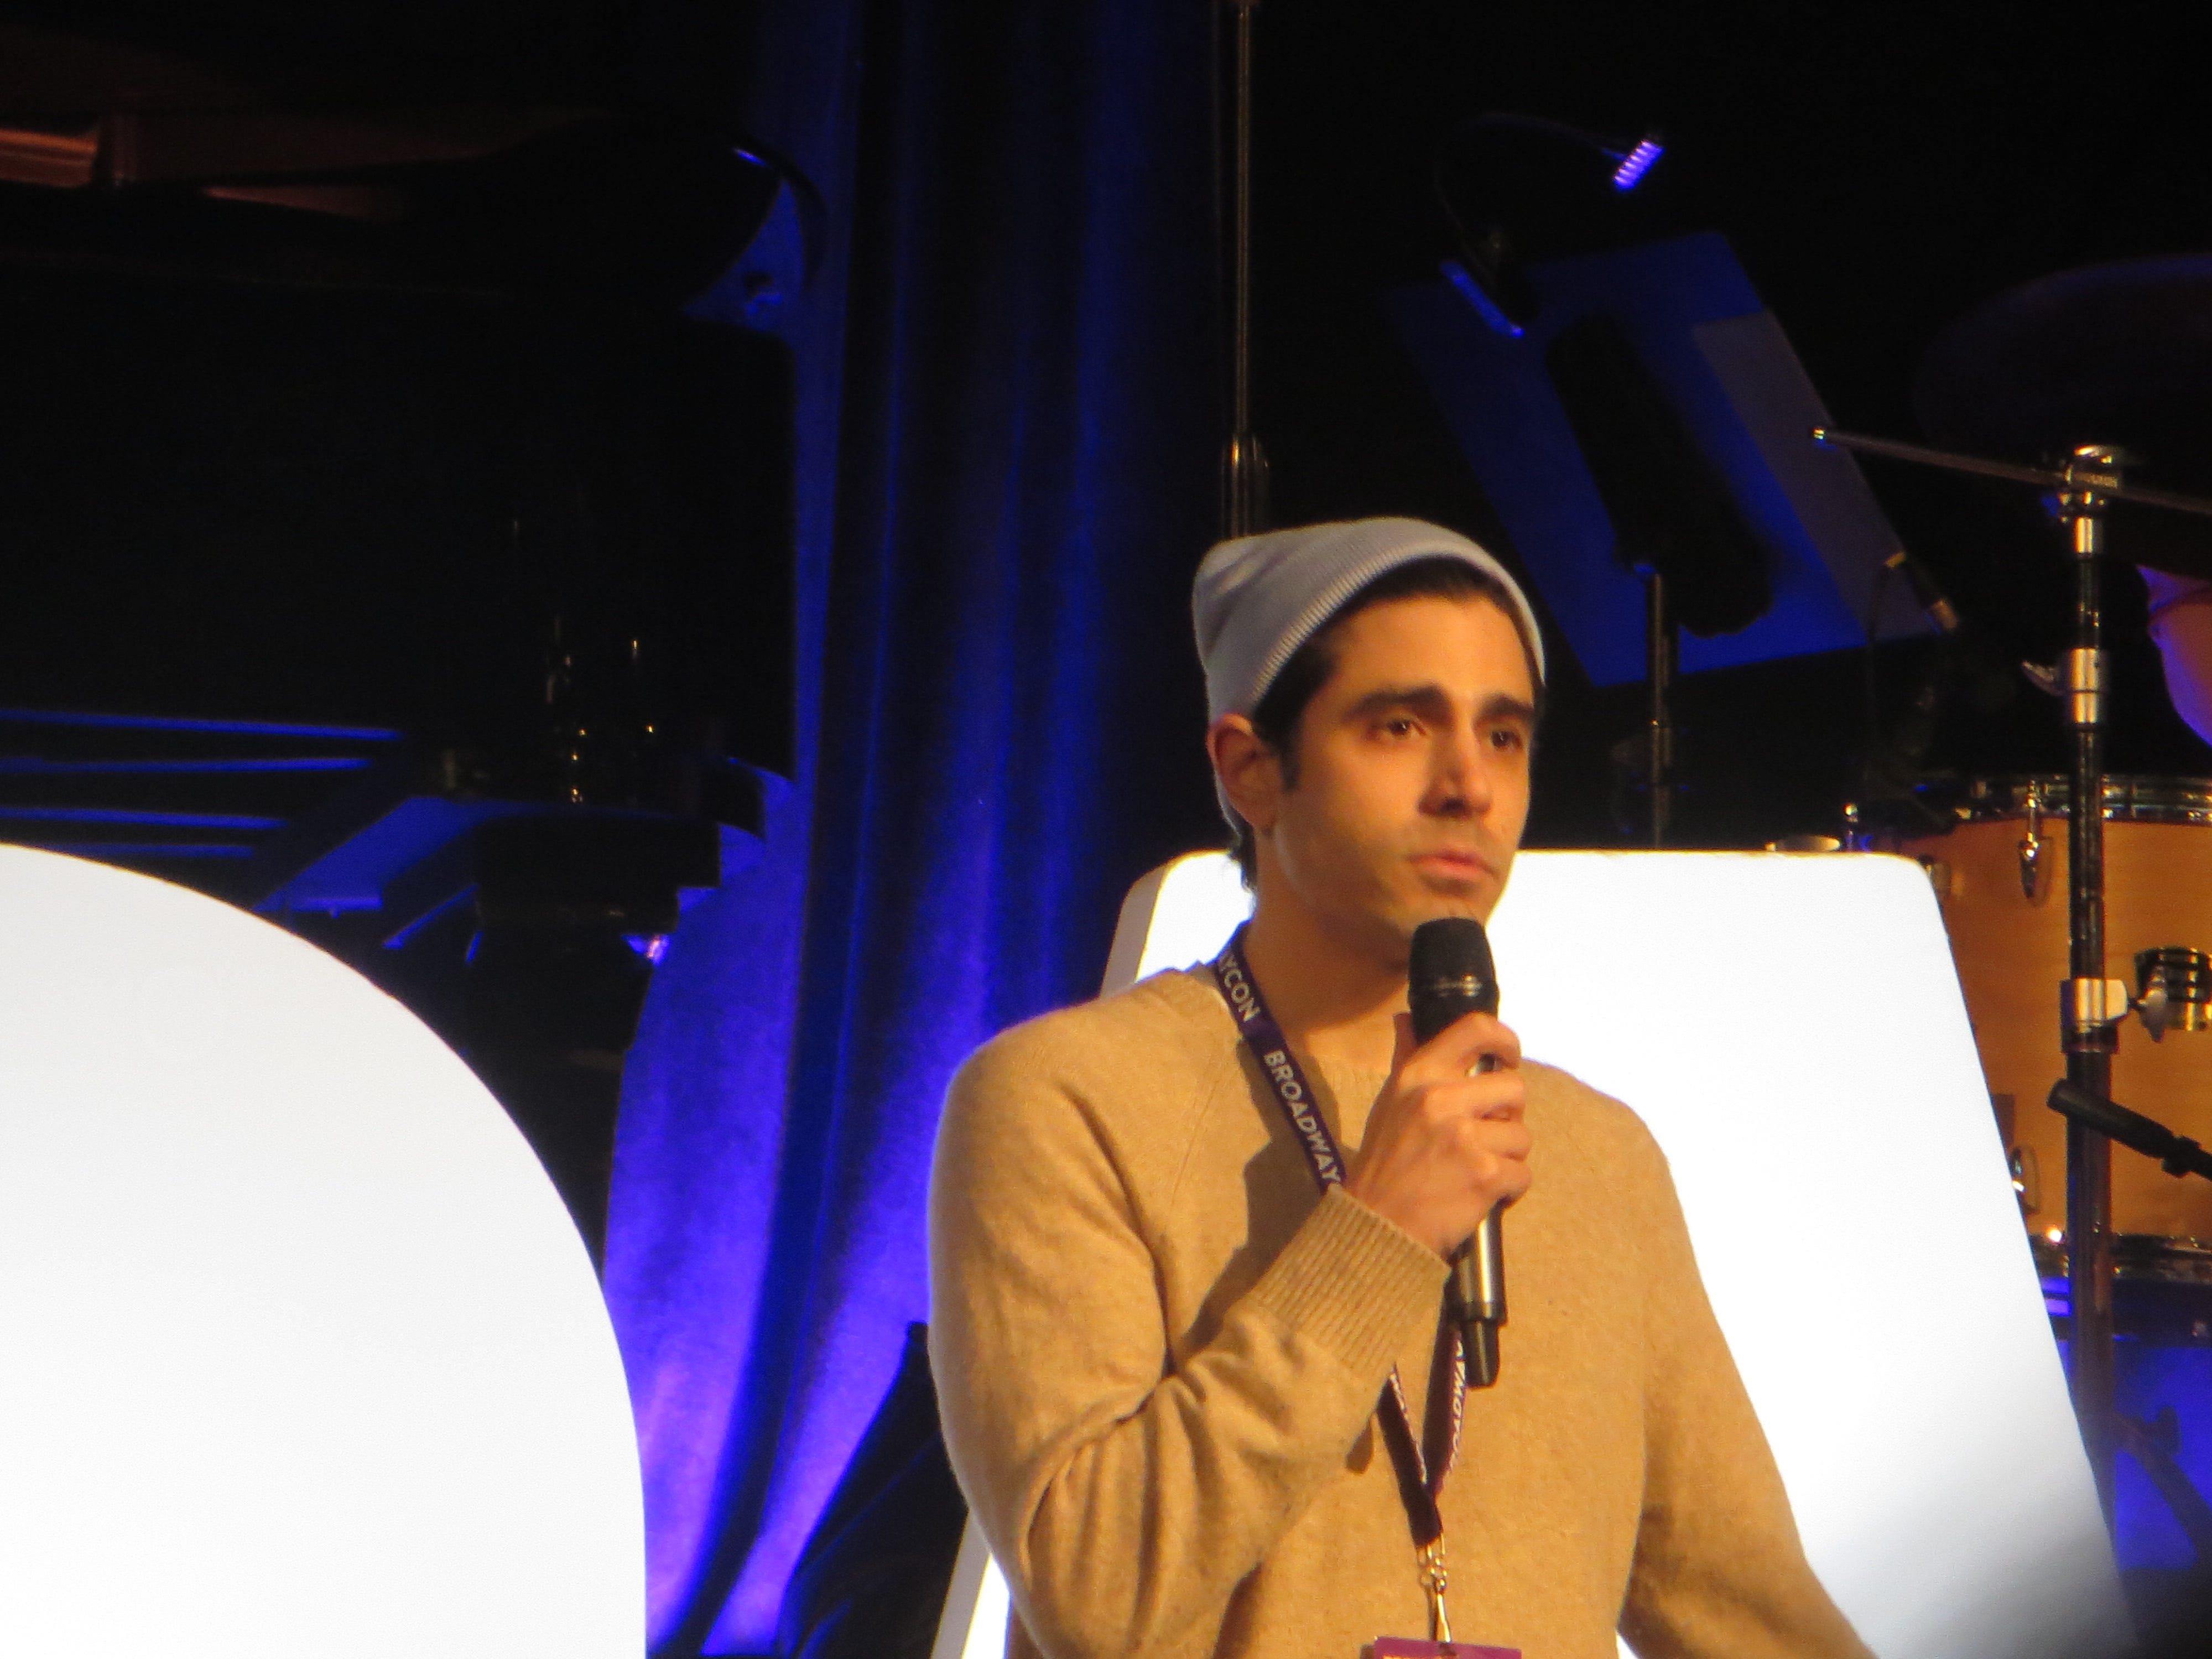 Damon Daunno performs at BroadwayCon 2019, held Jan. 11 to 13, 2019, at the New York Hilton Midtown in Manhattan.